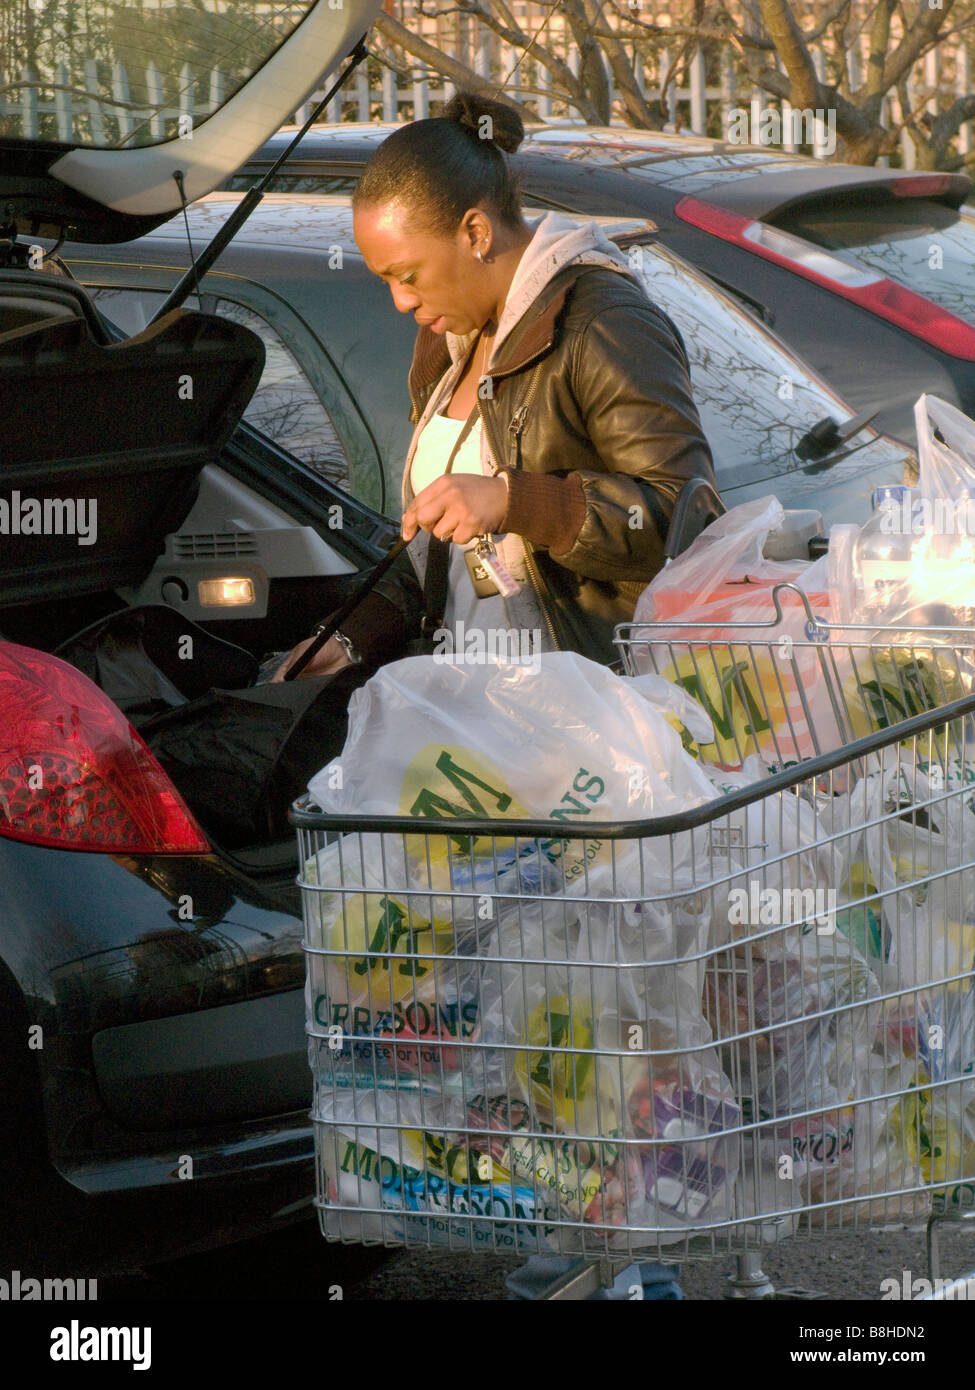 UK Woman loading a car with shopping at a supermarket, with trolley full of plastic bags.London Photo by Julio Etchart - Stock Image